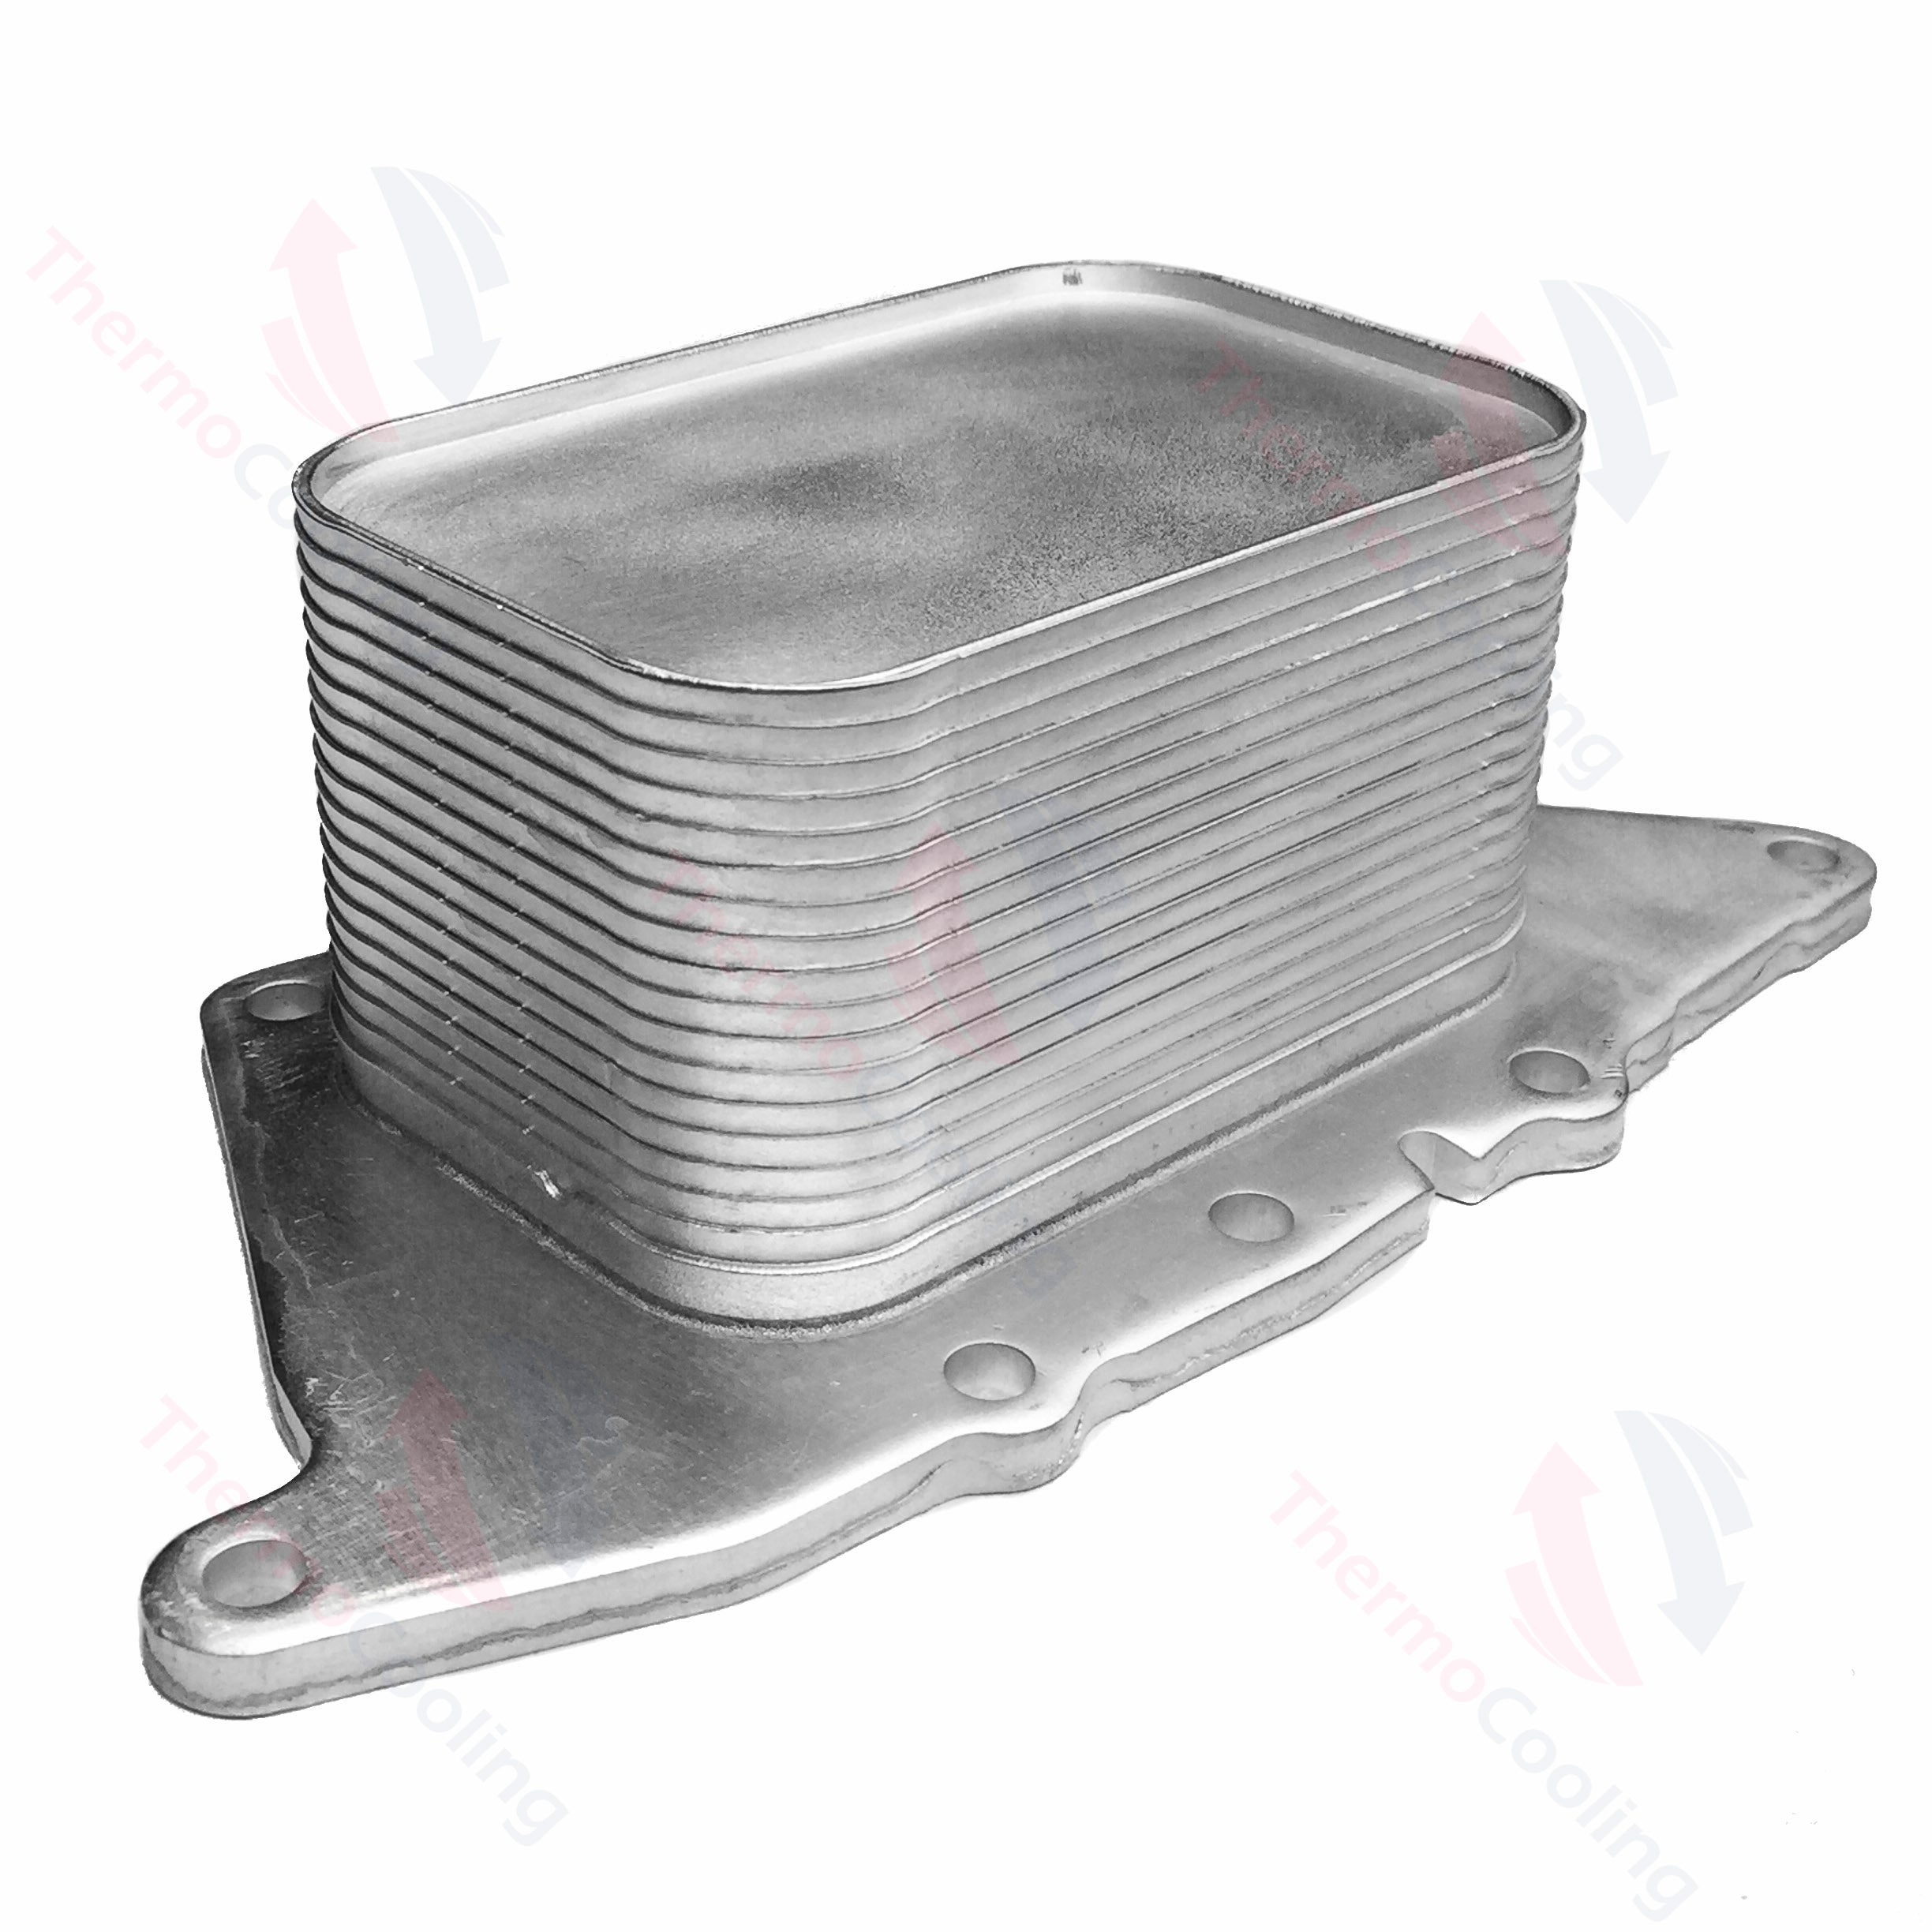 NEW Heat Exchanger Oil Cooler For BMW X1 I8 11428585236